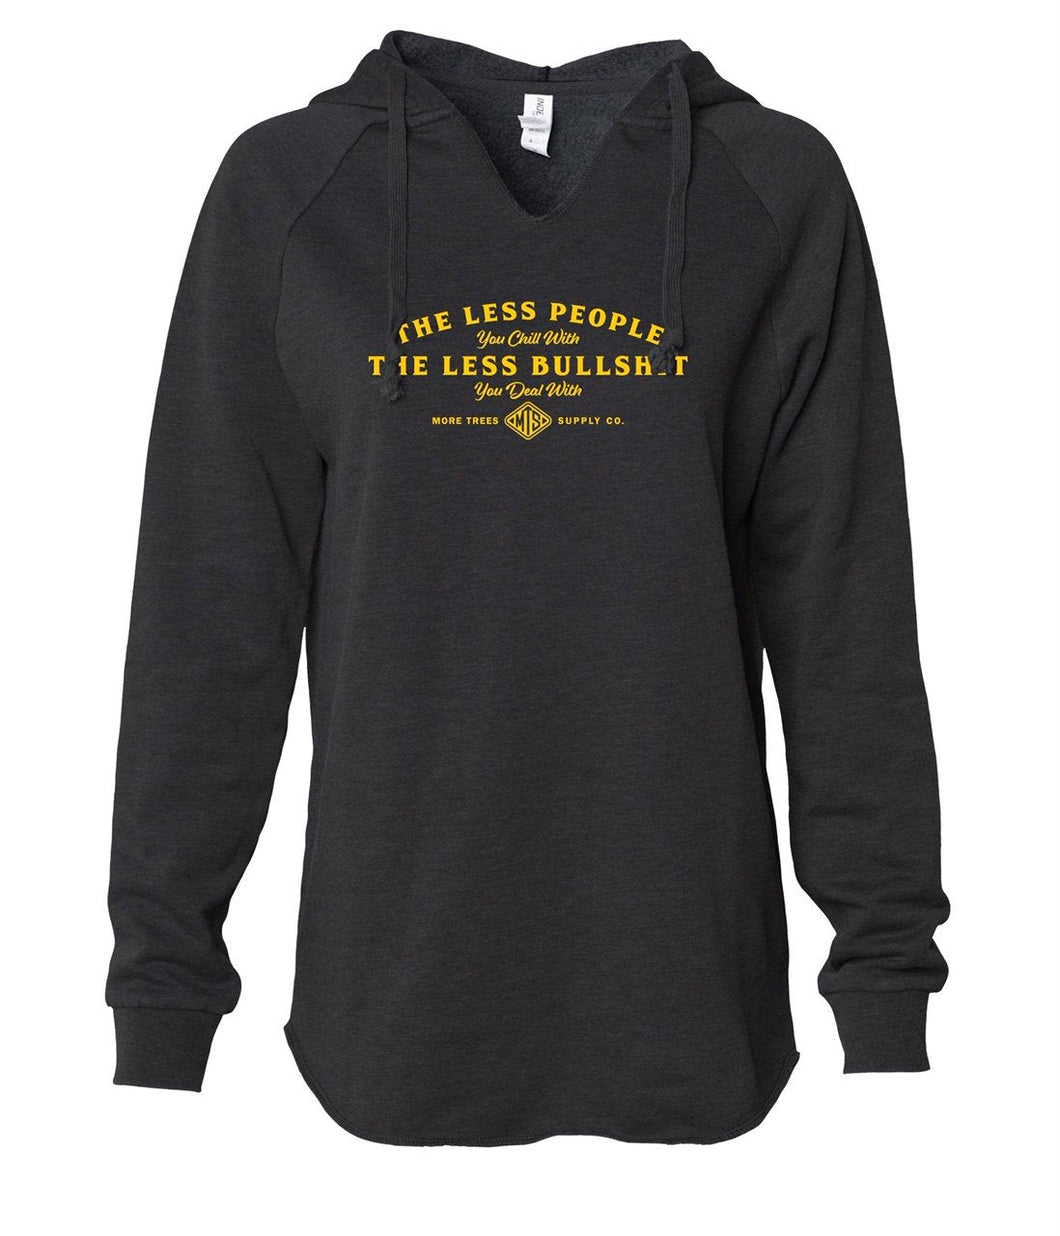 Less People Women's Pullover Hoodie - Black